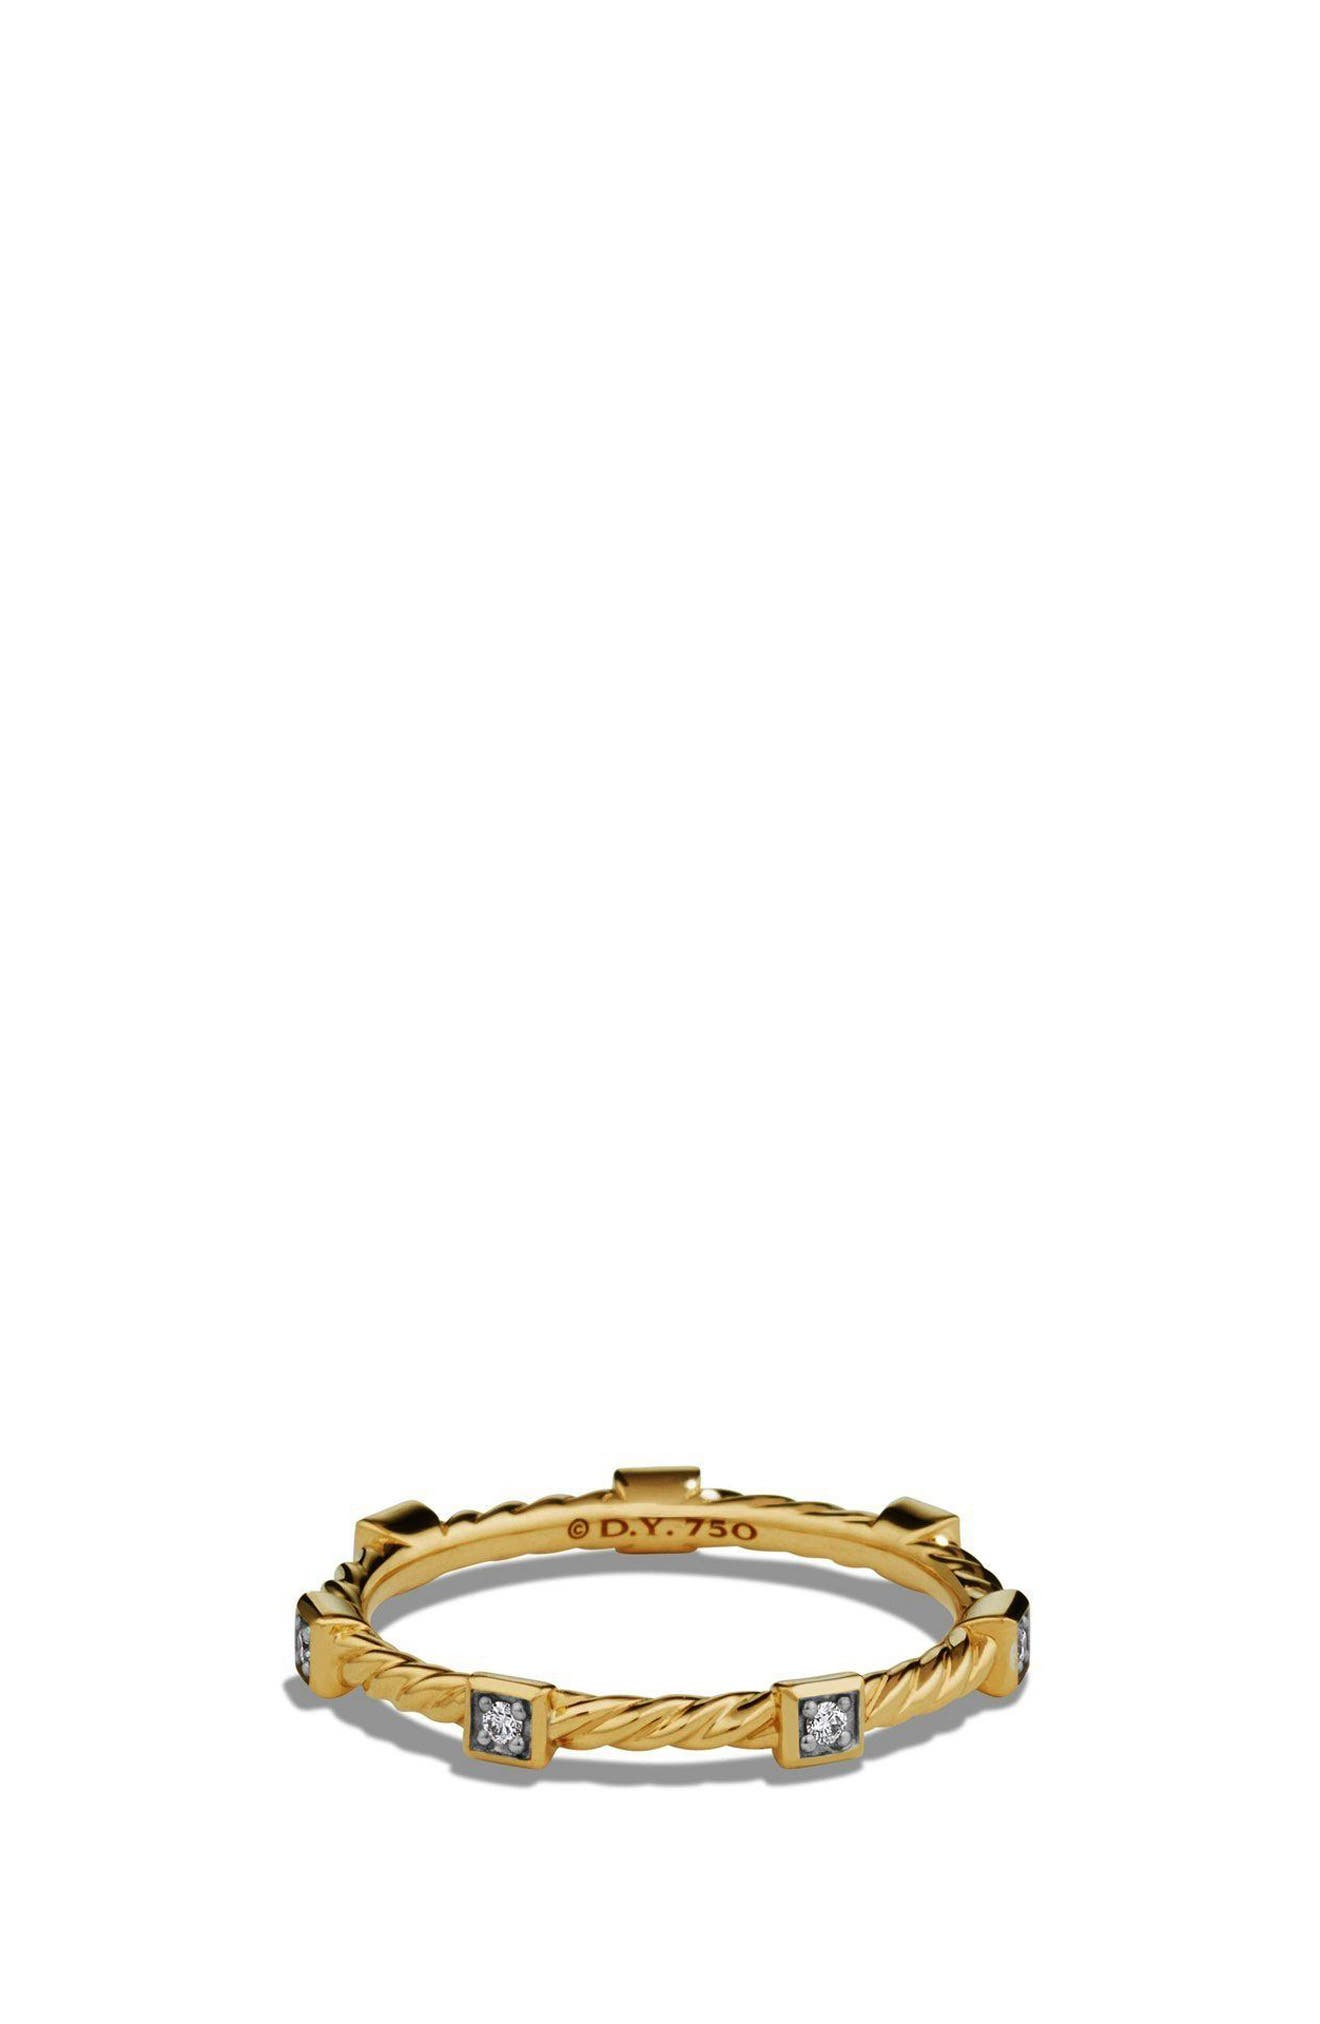 David Yurman Paveflex Ring with Diamonds in 18K Gold, 2.7mm